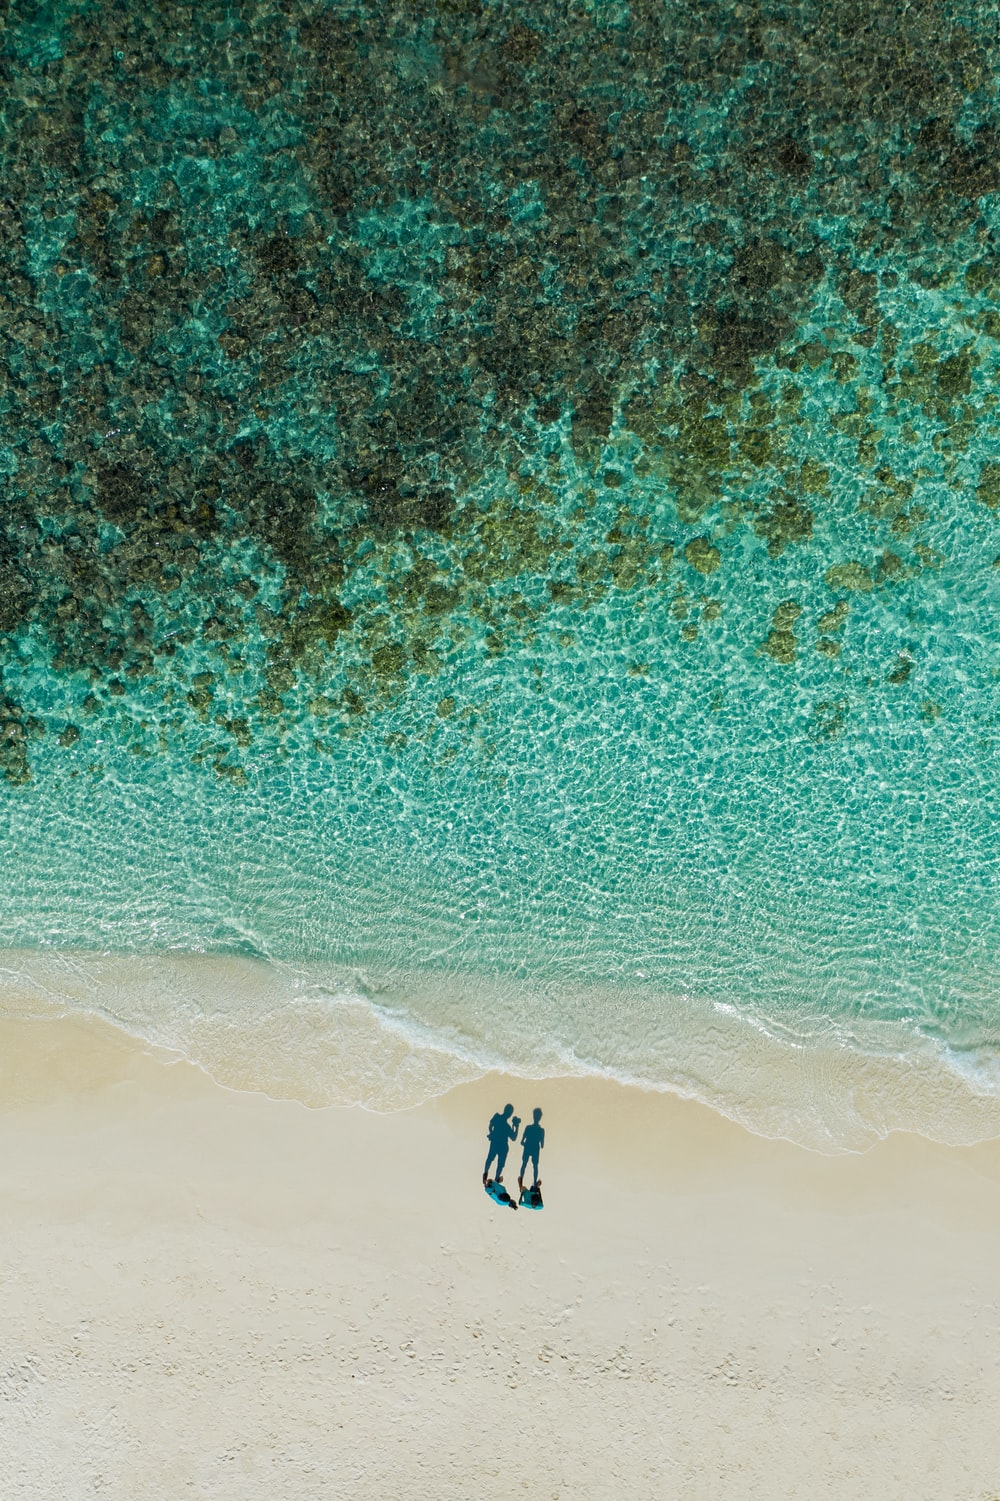 aerial photography of two people standing near seashore during daytime